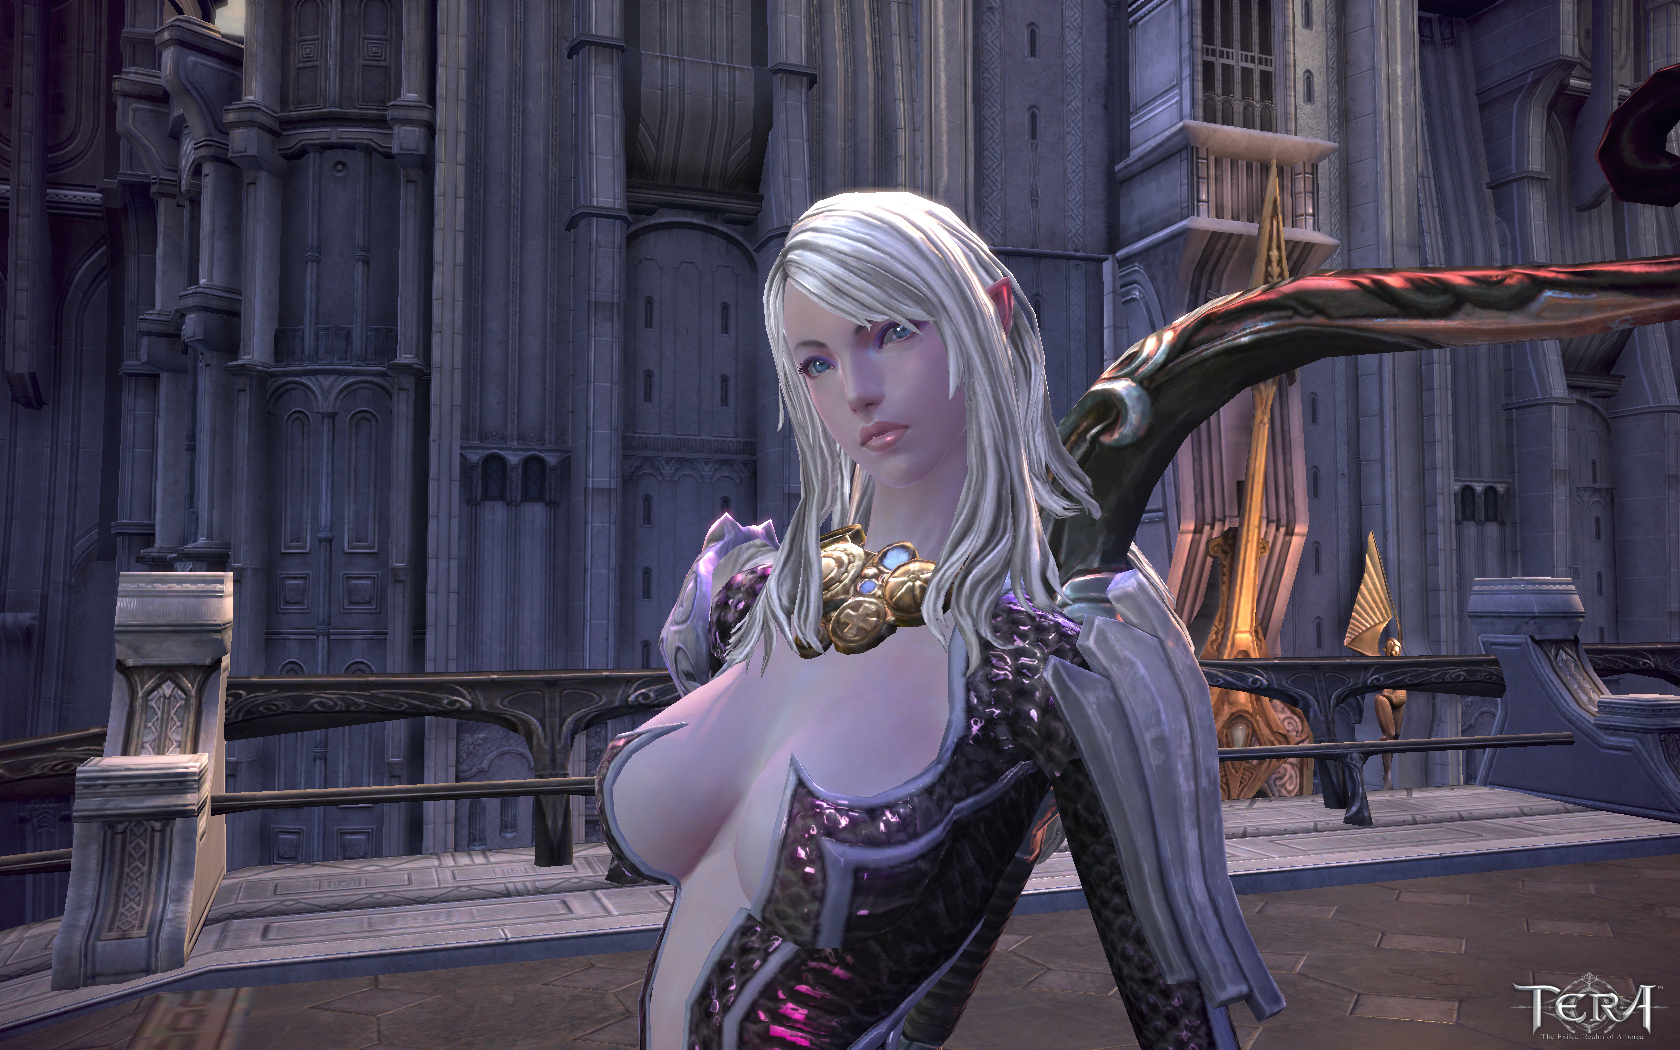 cichy games boo-yah deleted link tera